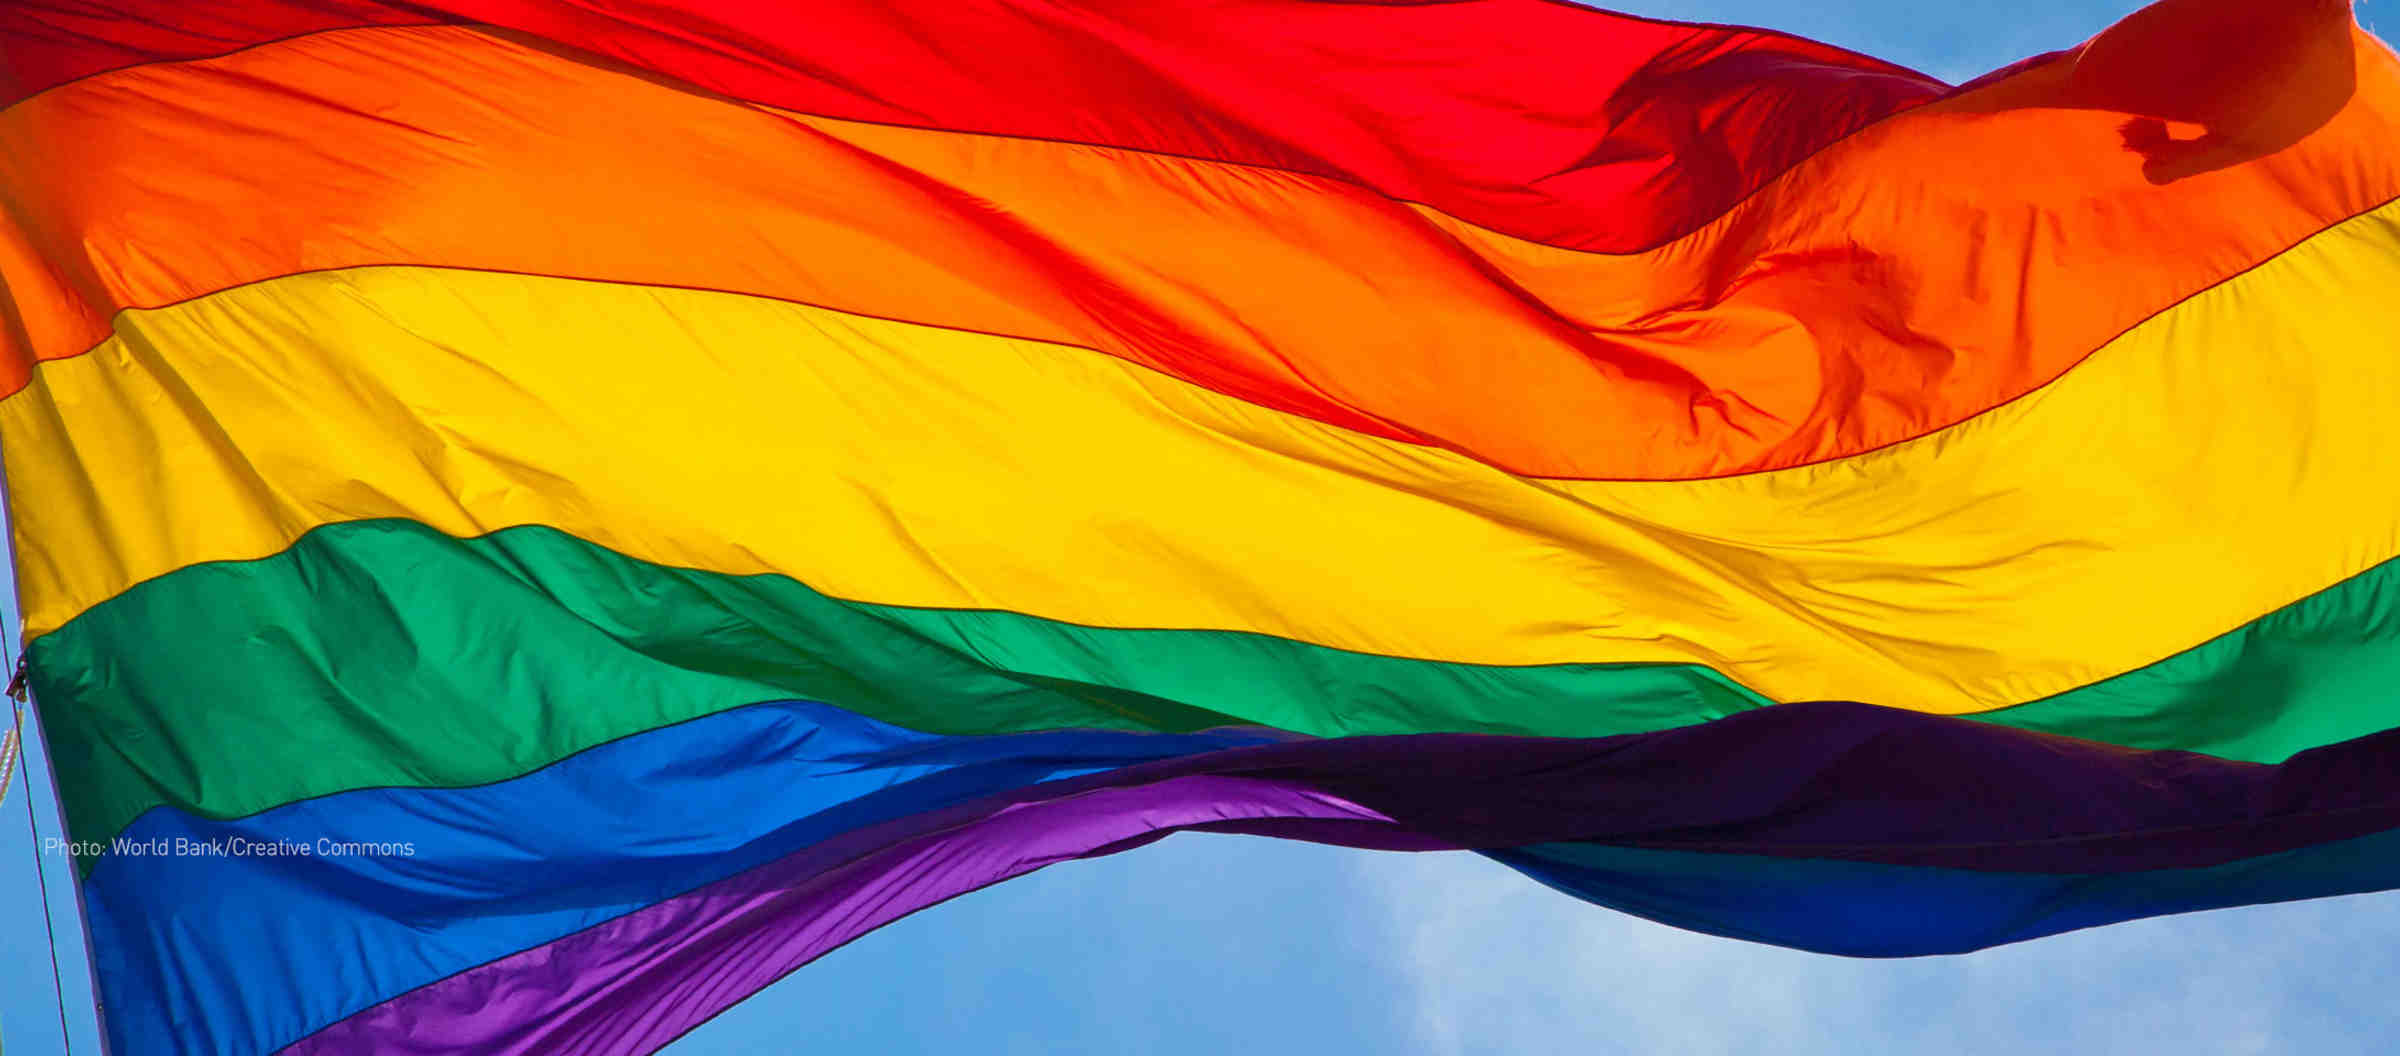 This flag is a symbol of LBGT pride and empowerment!